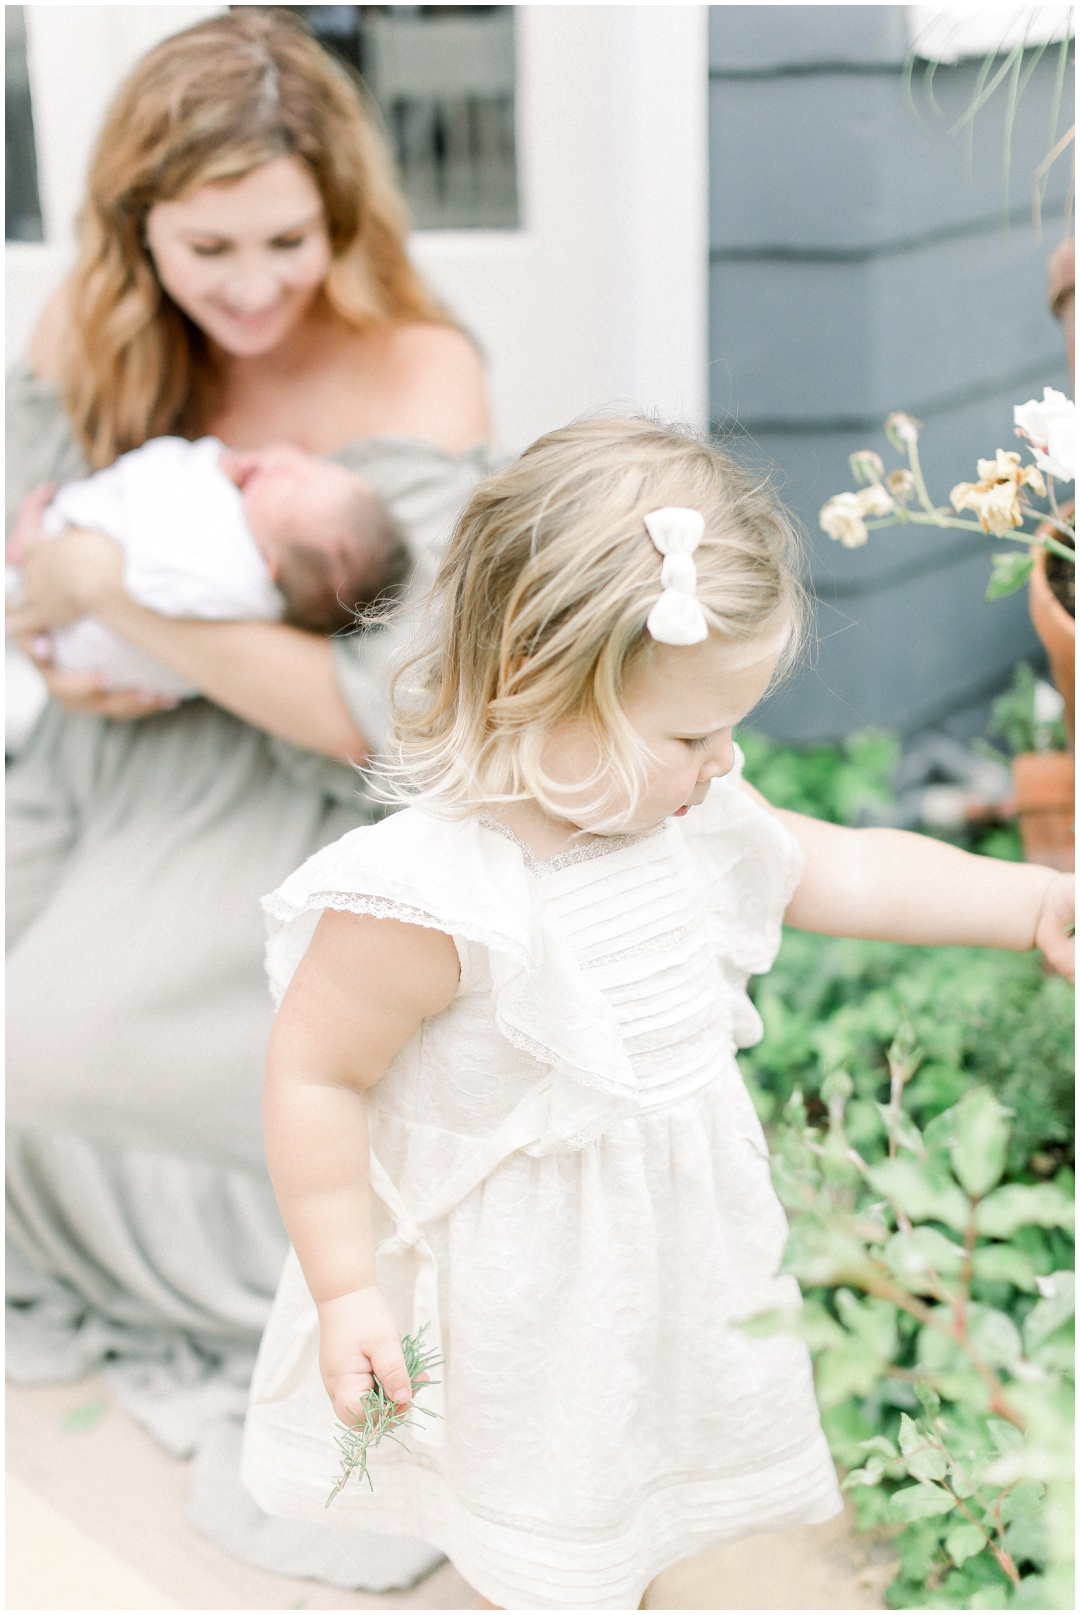 Newport_Beach_Newborn_Light_Airy_Natural_Photographer_Newport_Beach_Photographer_Orange_County_Family_Photographer_Cori_Kleckner_Photography_Newport_Beach_Photographer_Blaire_Baker_Brett_Baker_Caroline_Baker__3911.jpg